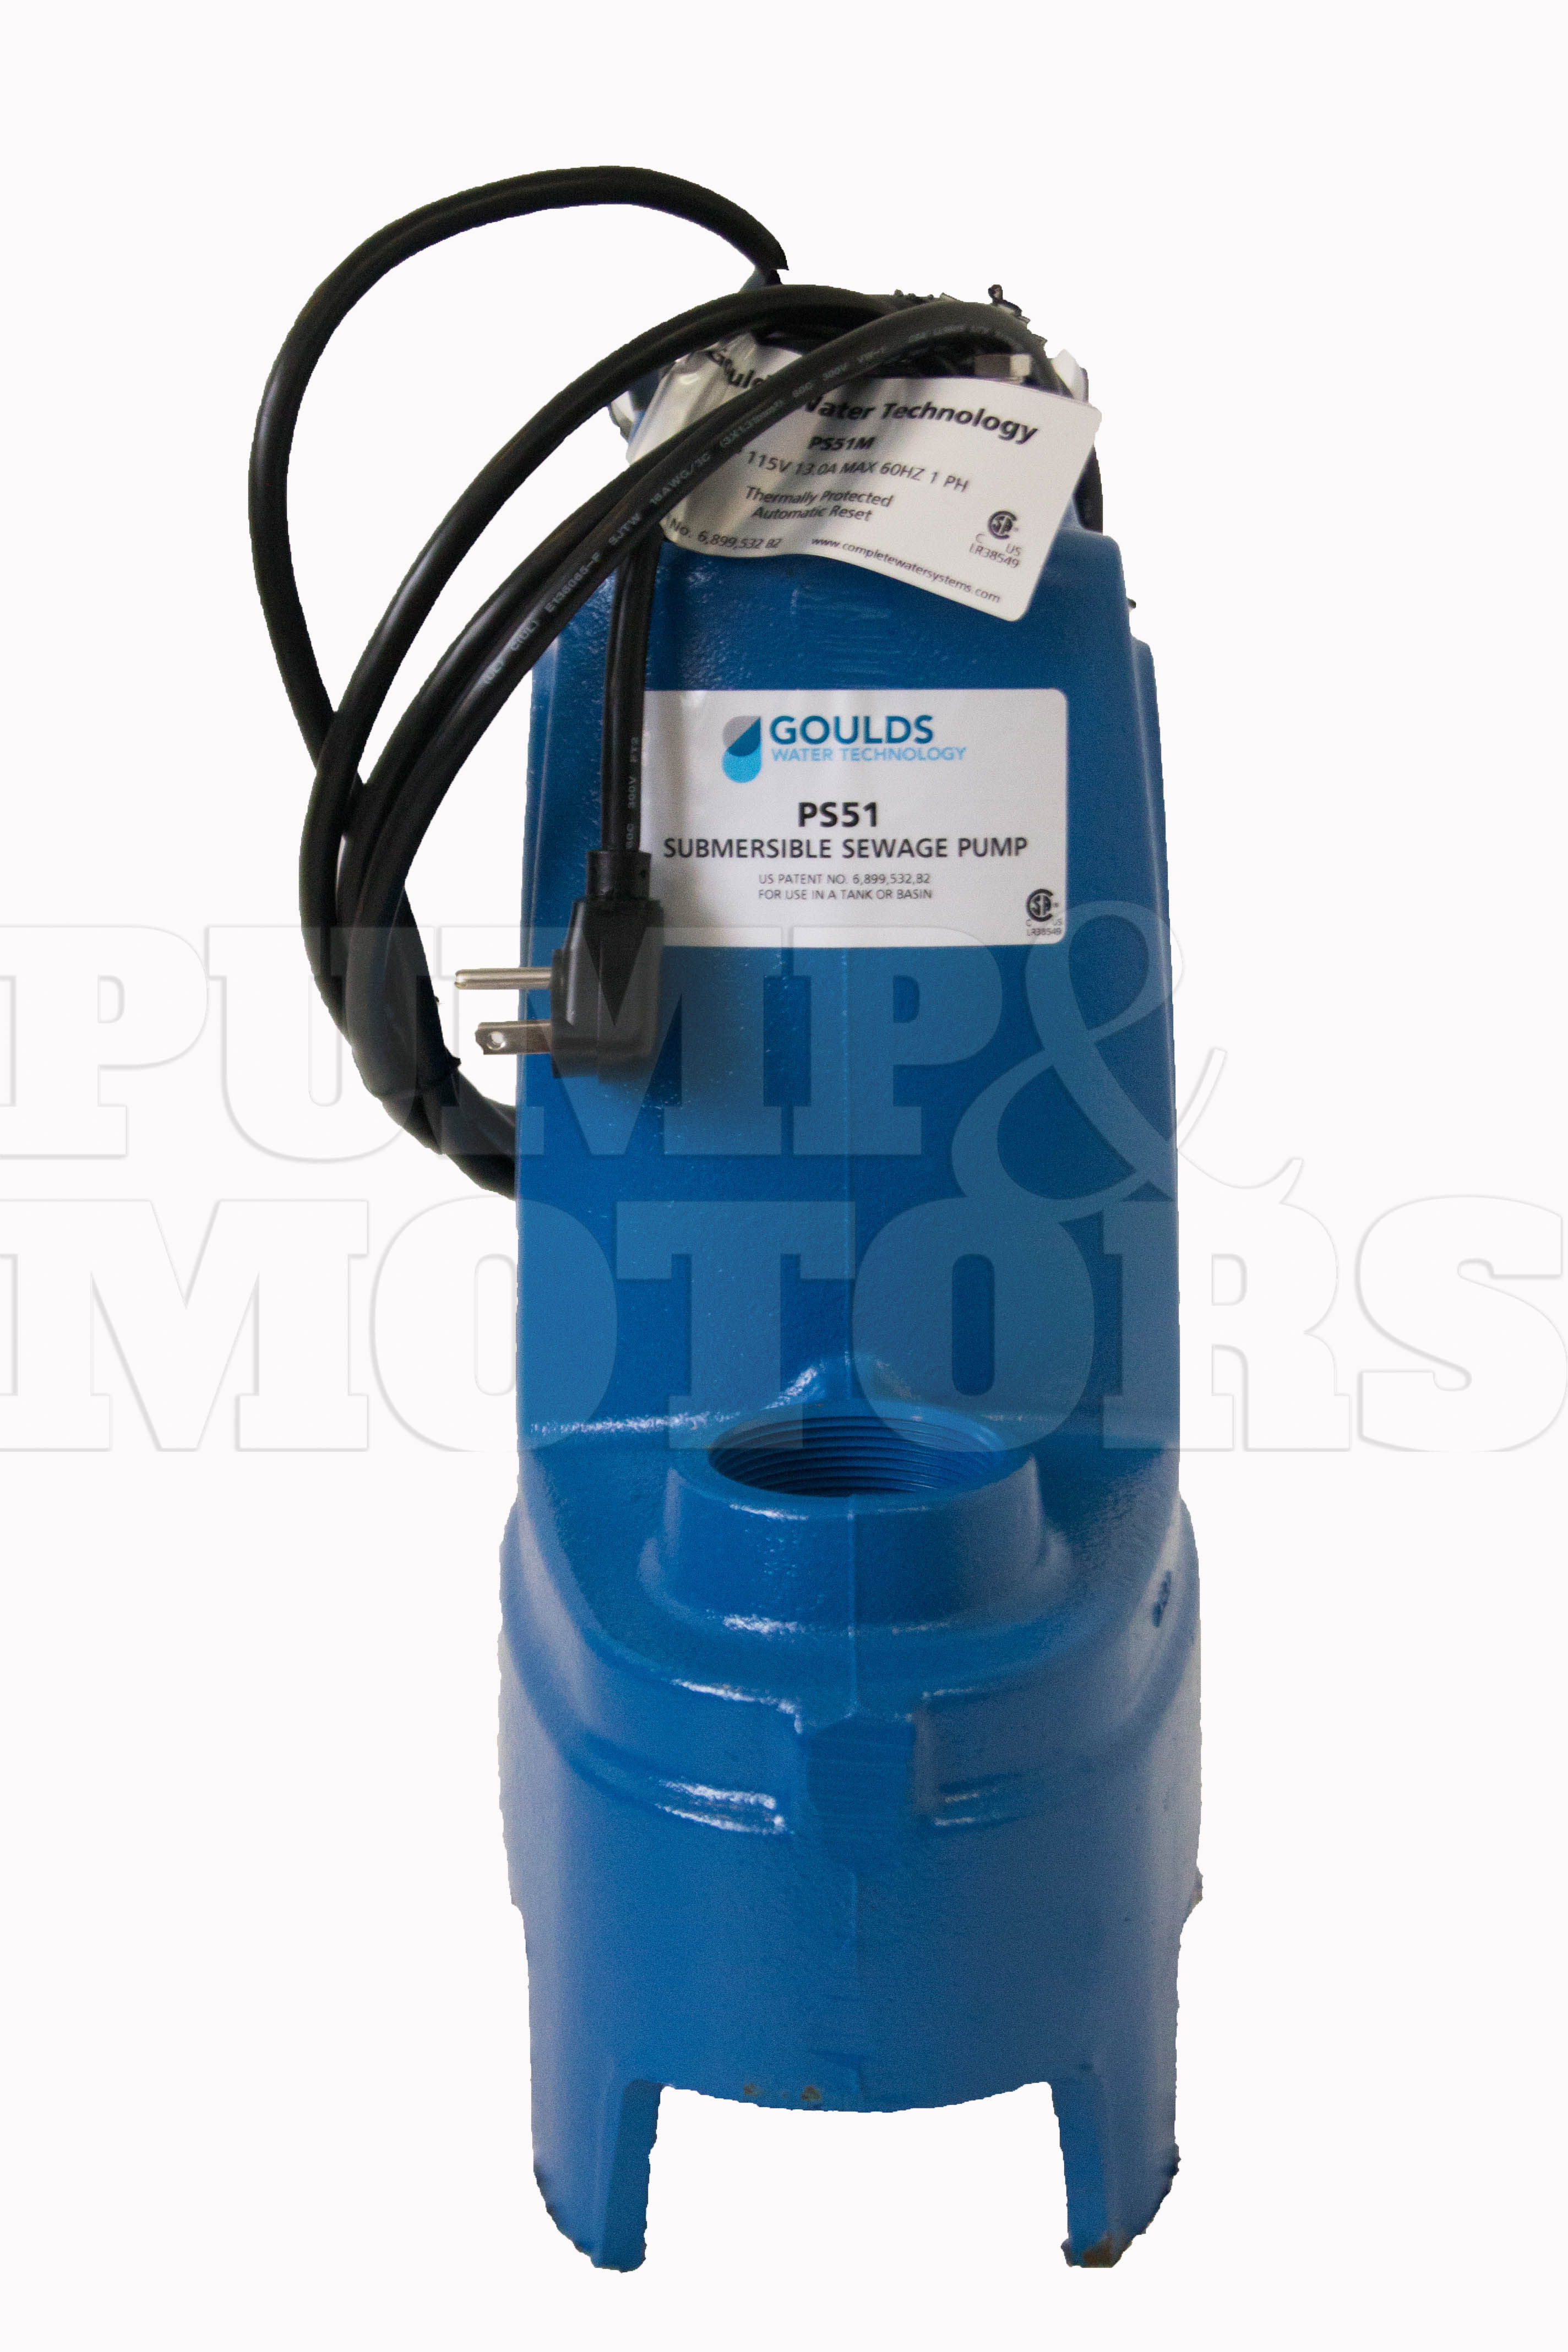 All Products : Pump and Motors | Water Pumps for Commercial ... on